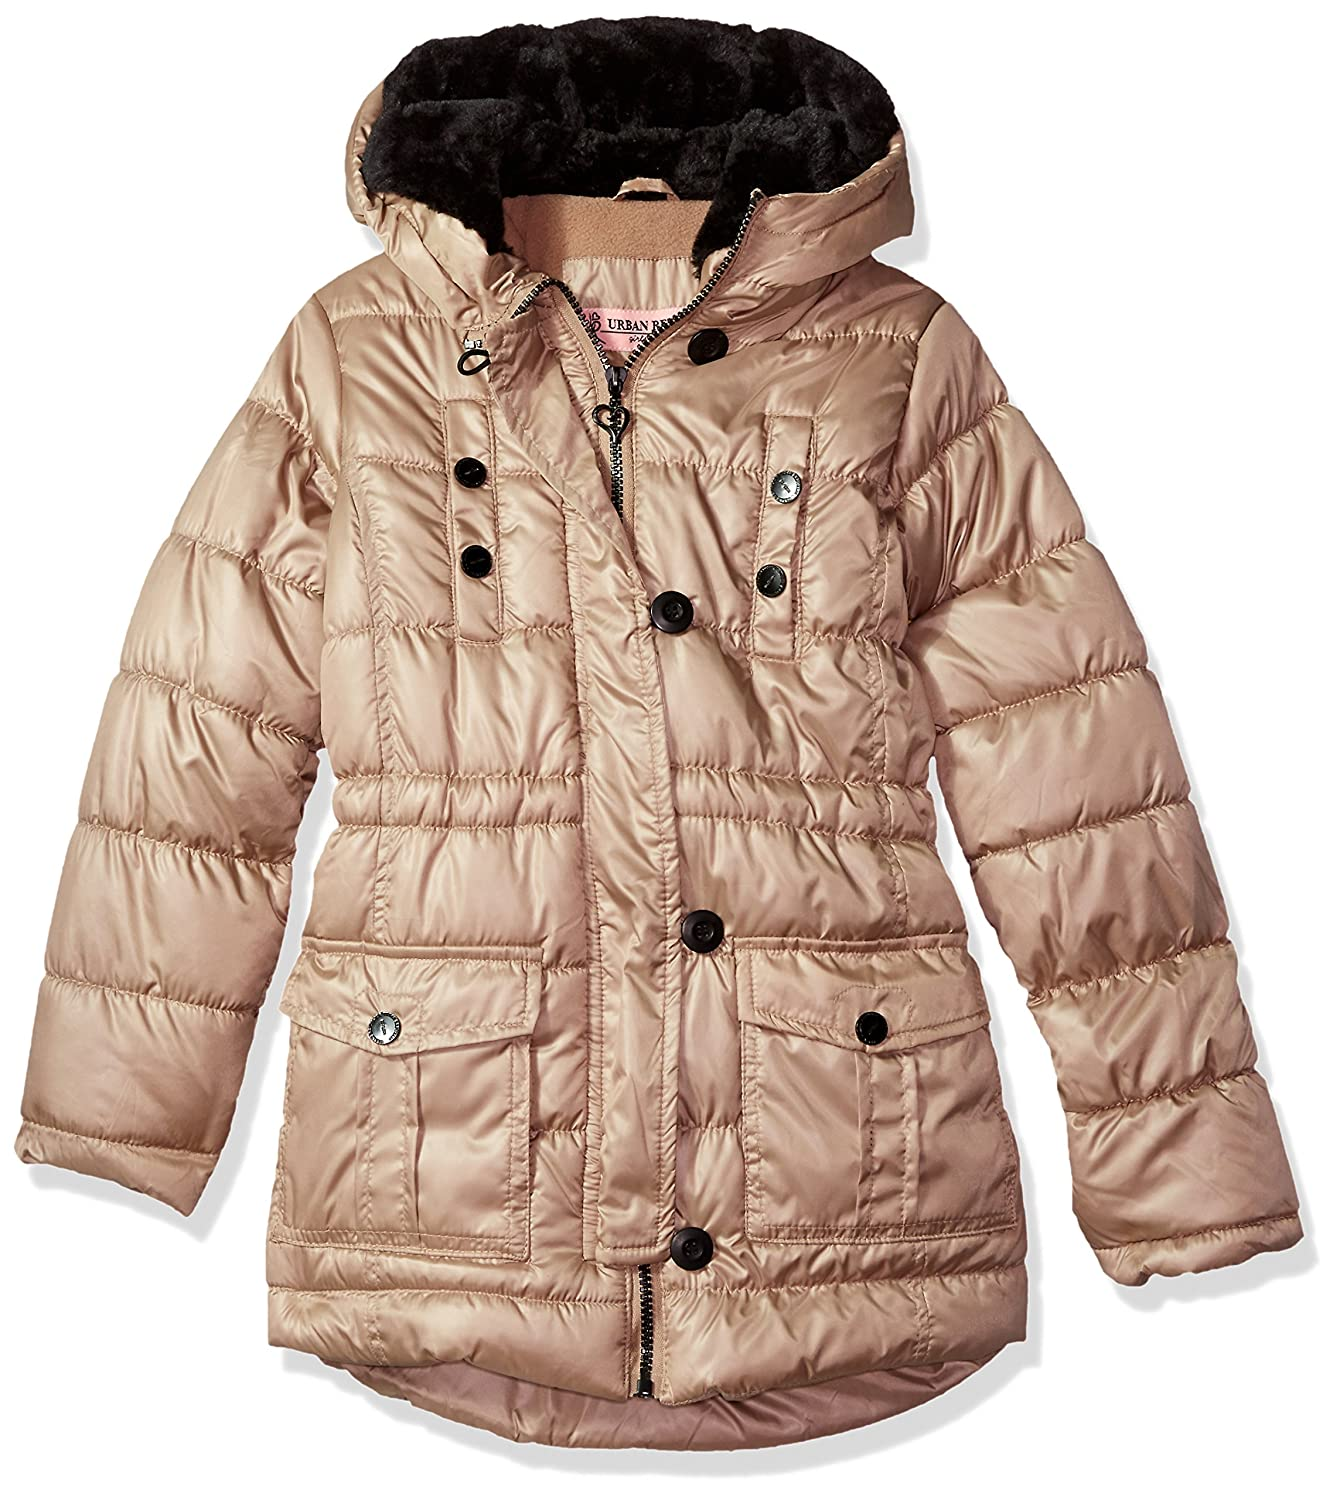 Urban Republic Girls' Toddler Long Puffer Jacket, Bubgumpink, 2T 5667TBP-125